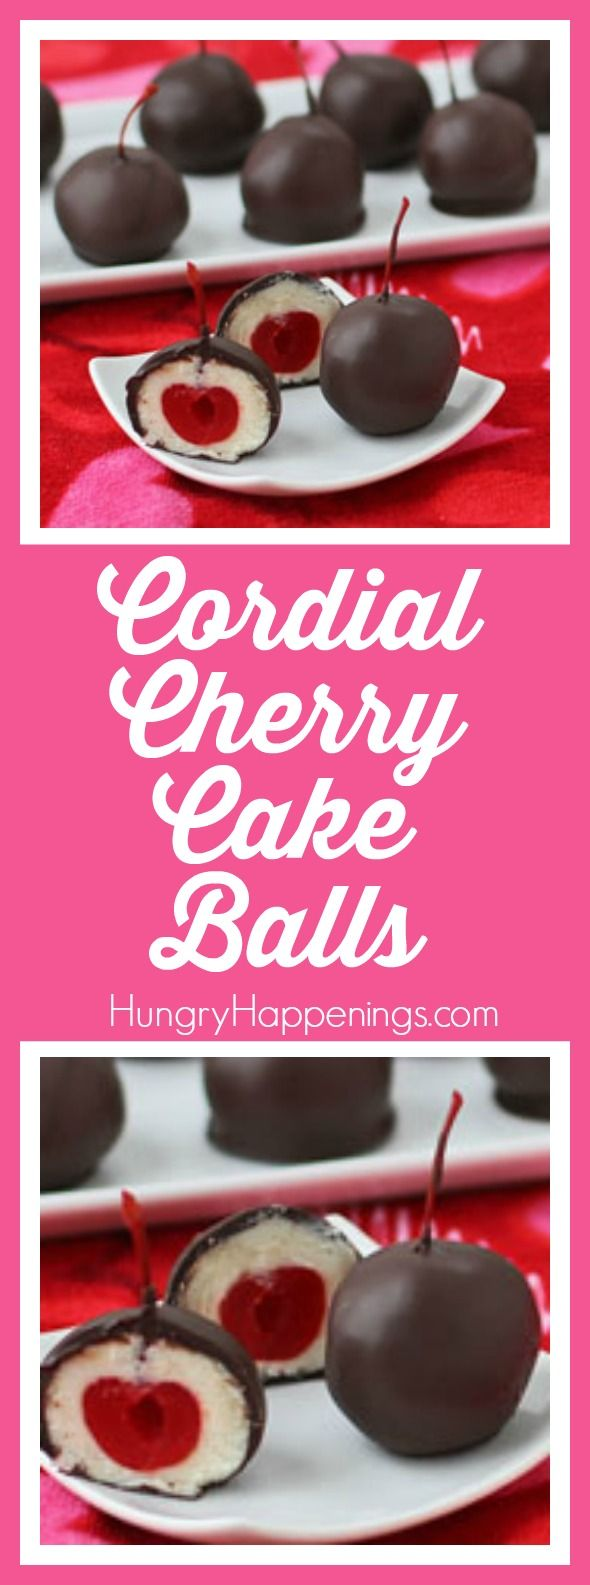 One of my favorite desserts ever are cherry cordials so I decided to make them even better and made these Cordial Cherry Cake Balls. The cherry flavor bursts as the cake melts and your mouth will overload with all this deliciousness!